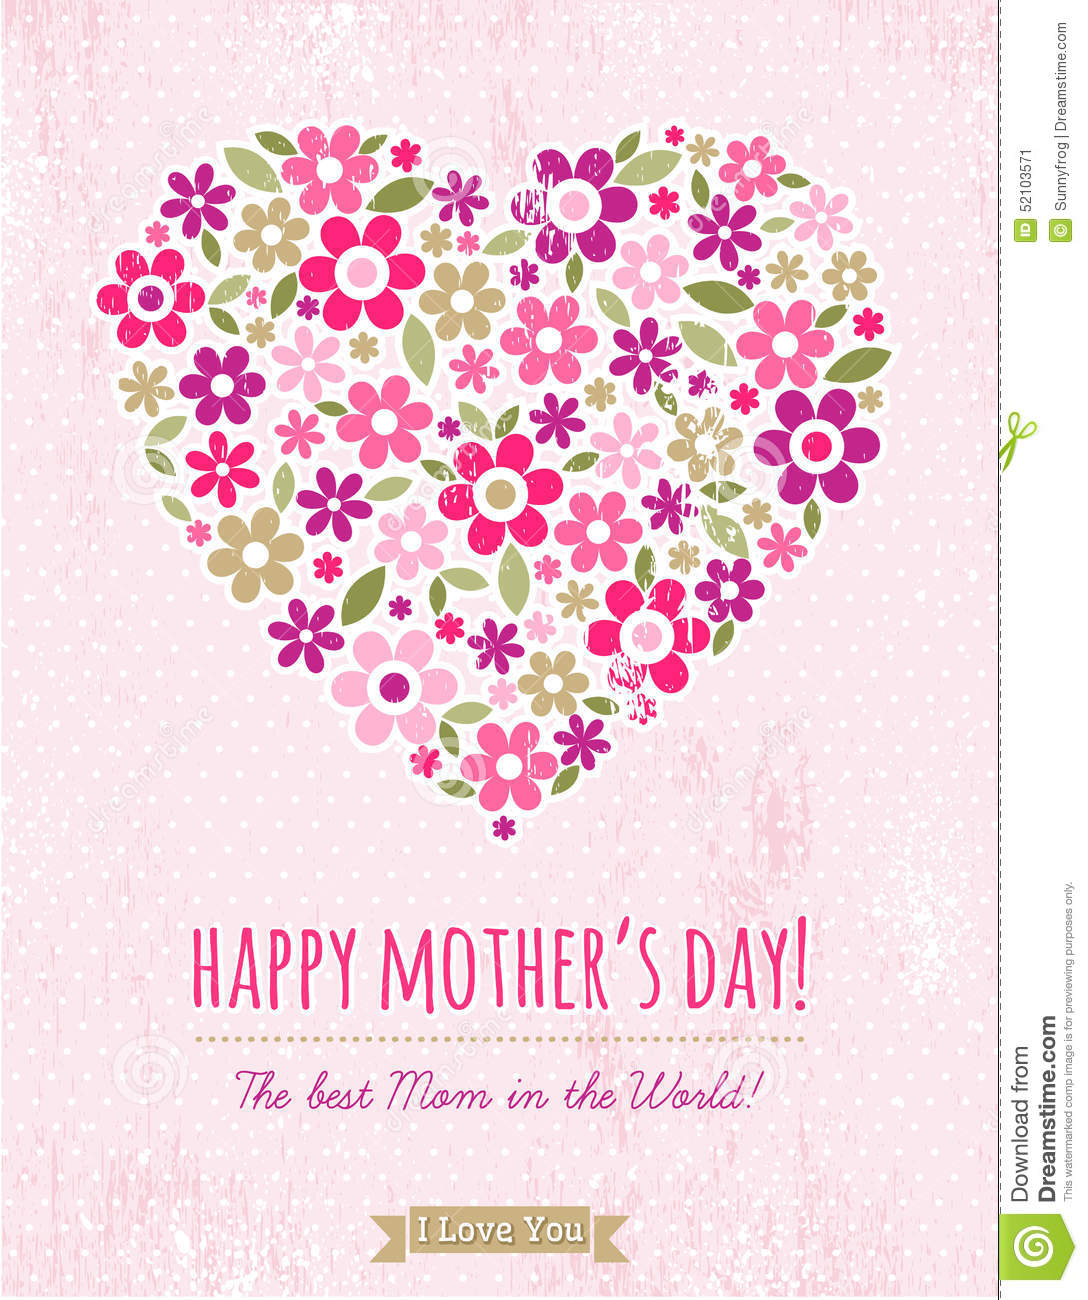 Mothers Day Card With Heart Of Flowers On Pink Background Stock